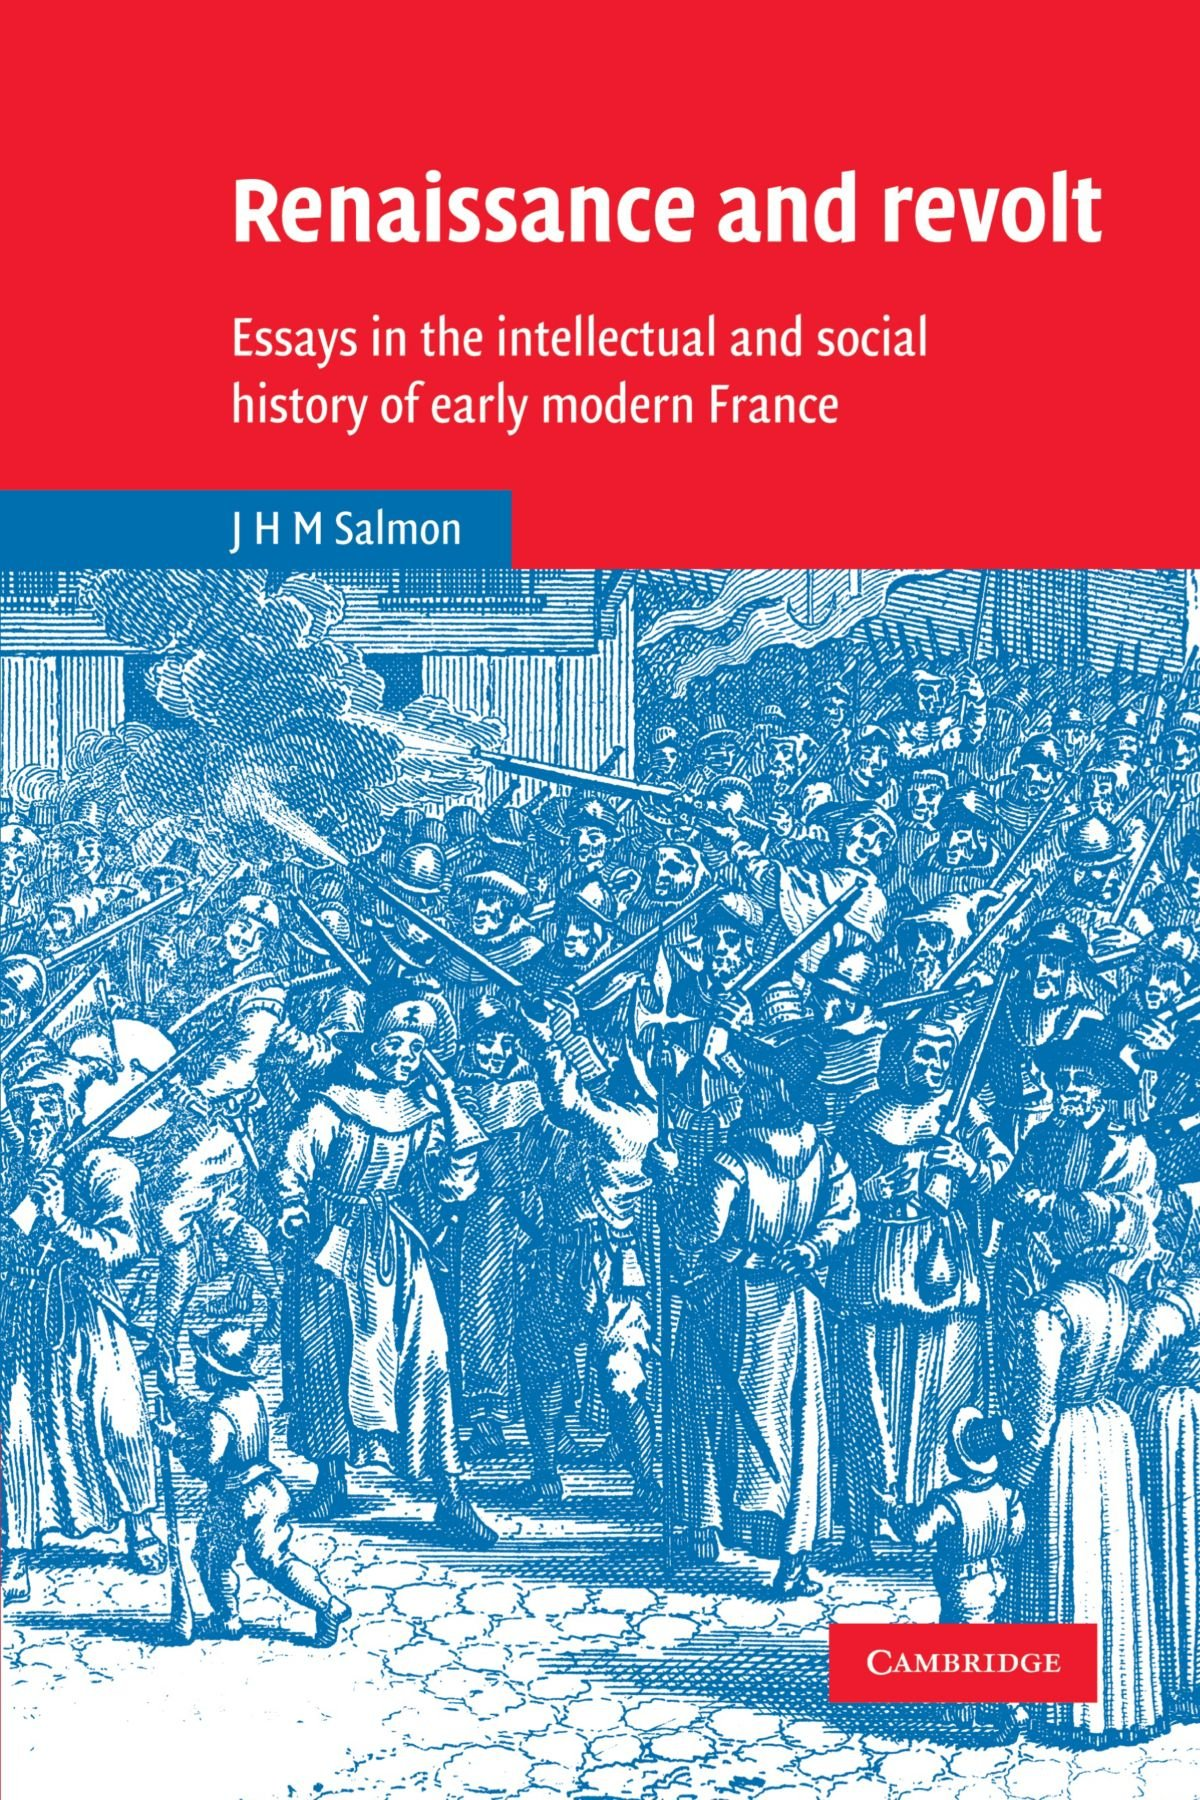 renaissance and revolt essays in the intellectual and social renaissance and revolt essays in the intellectual and social history of early modern cambridge studies in early modern history john hearsey